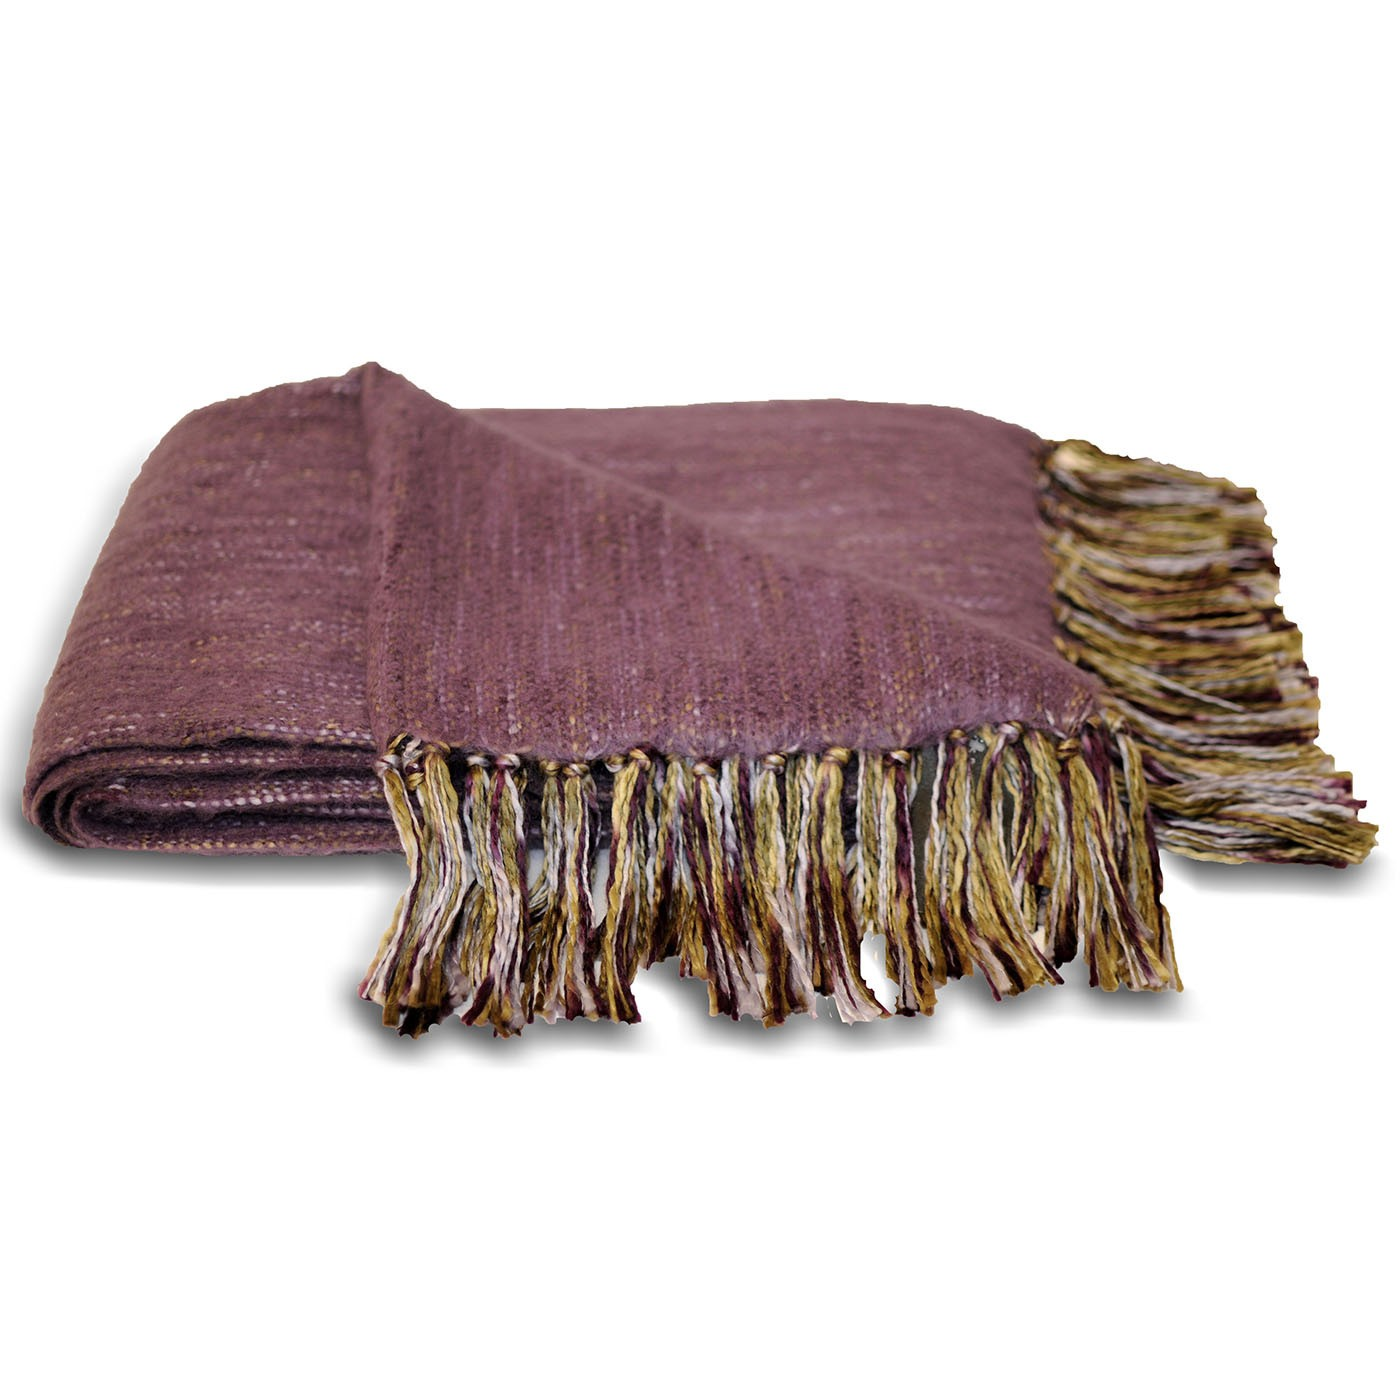 The Home Furnishings Company Plum Chenille Style Throw 127x180 cms -  Ideal for sofas, chairs and beds